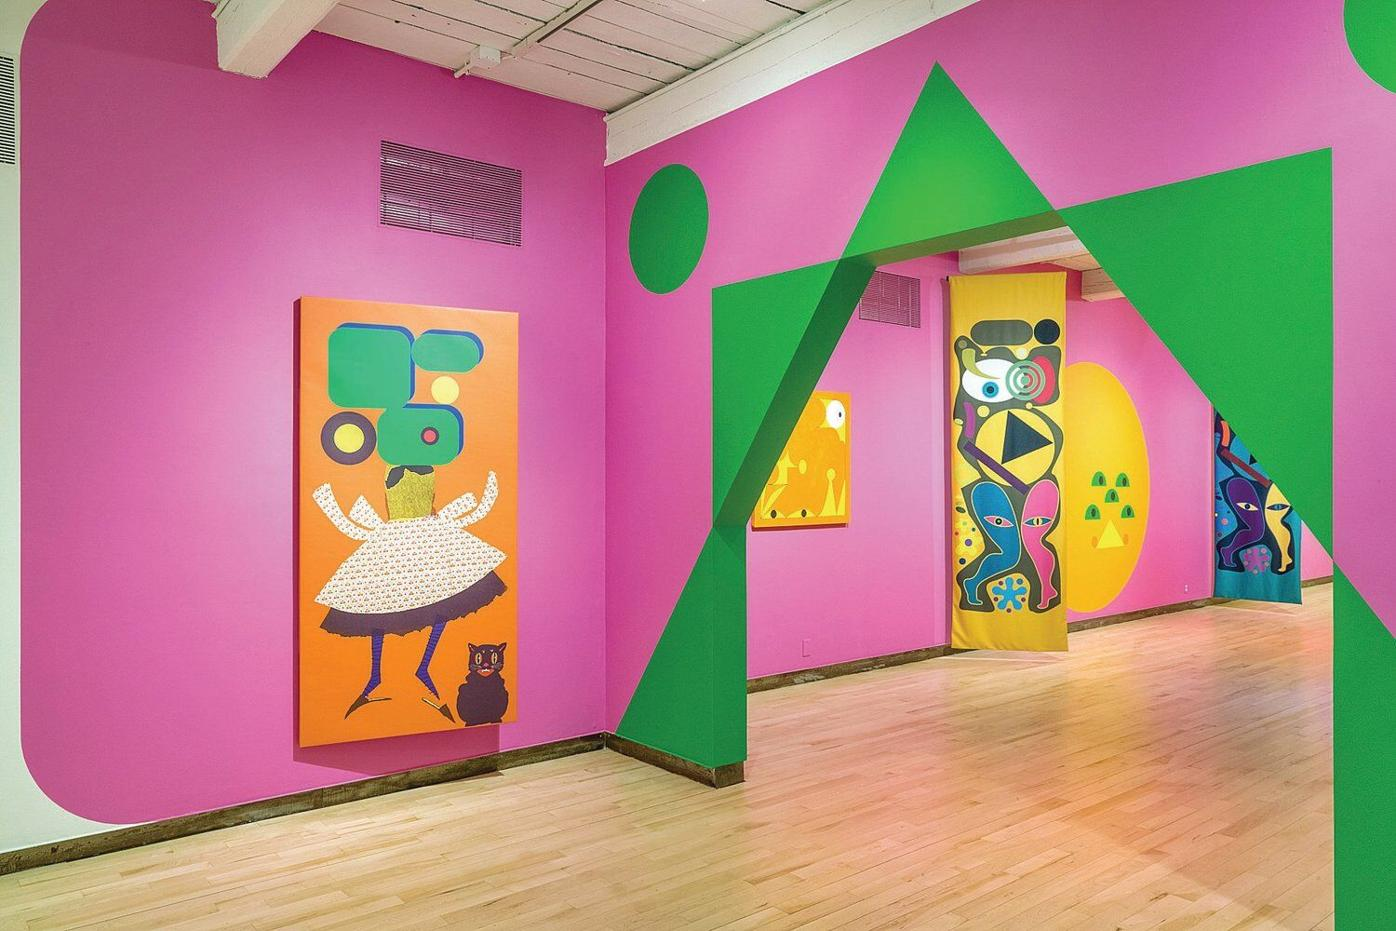 'Cartoon' has new meaning in carnival-like exhibition at Mass MoCA